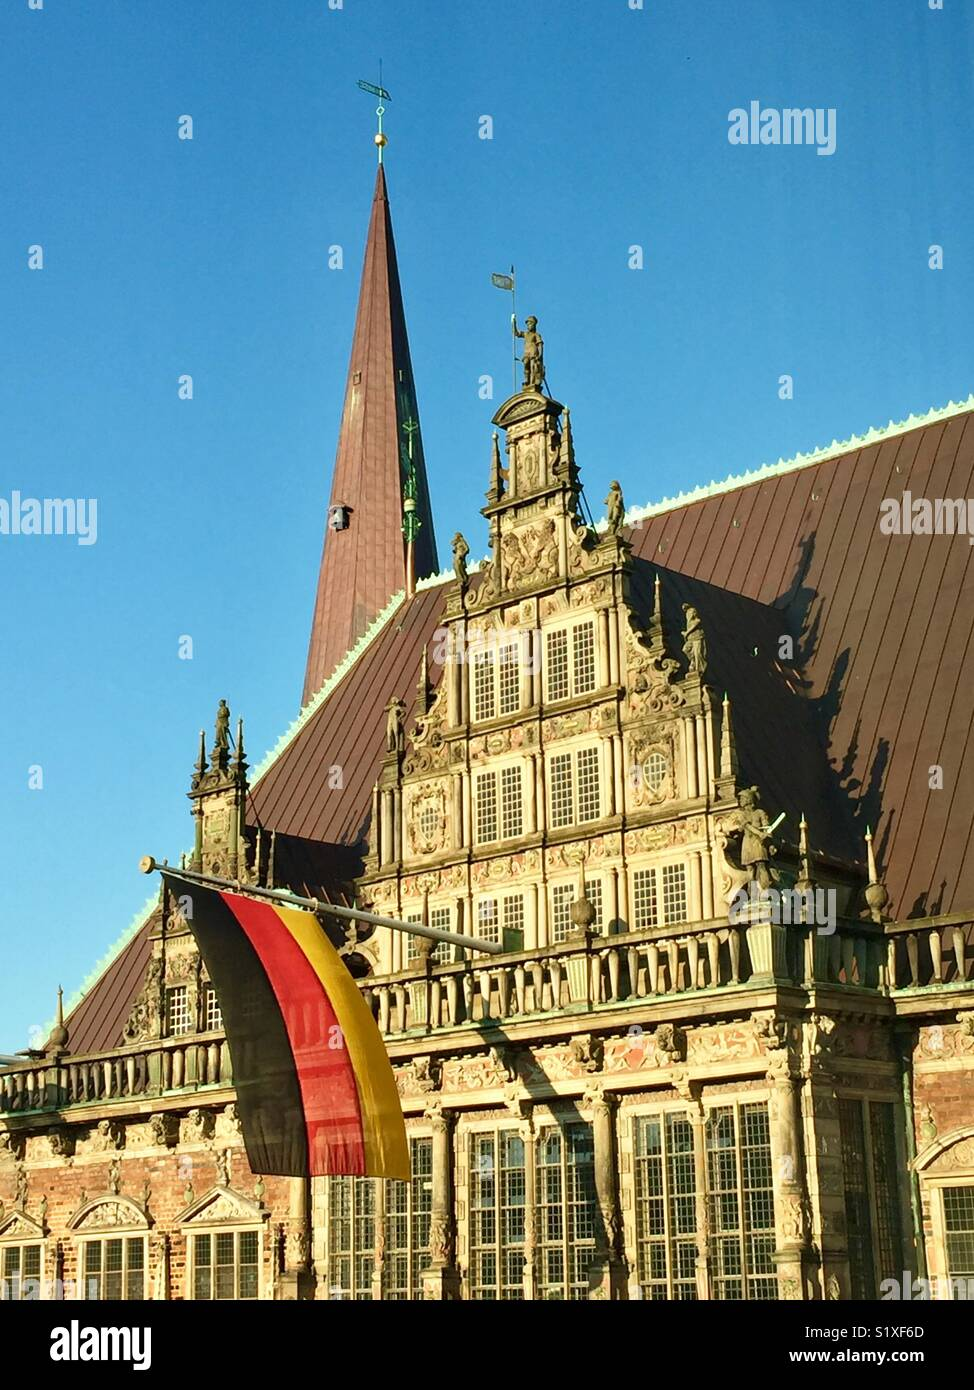 A view of the flemish gable of the Bremen Town Hall added about 1612 flying the German flag.  An important example - Stock Image